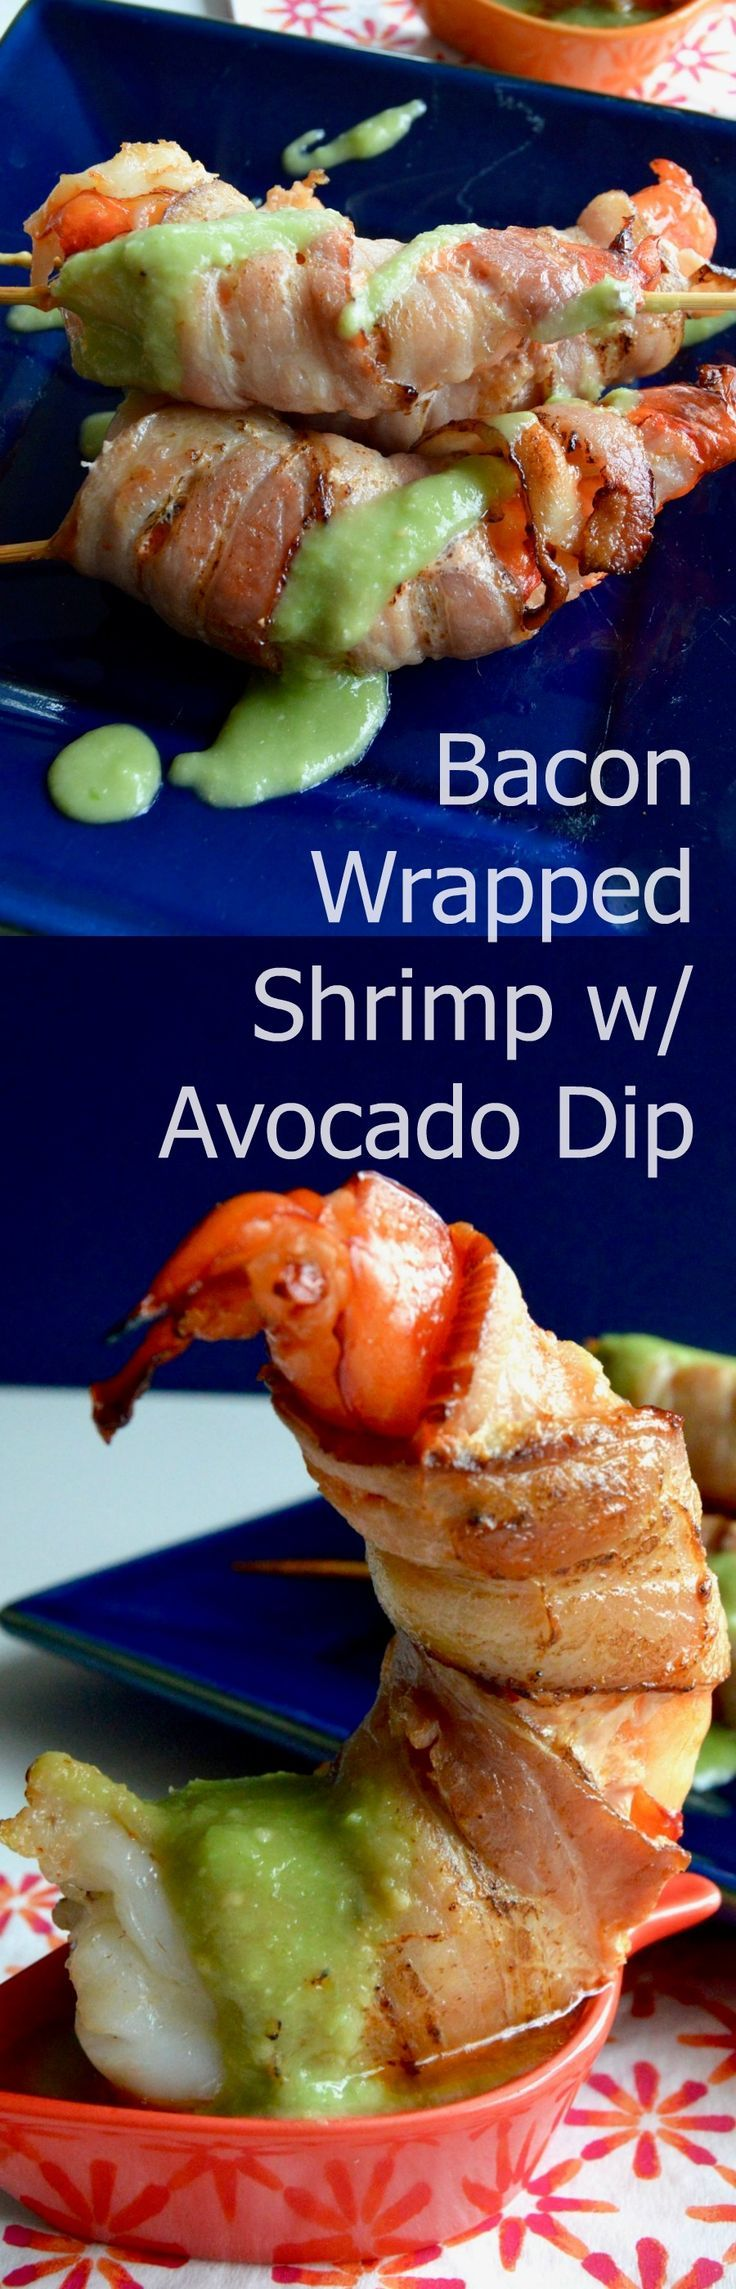 Succulent shrimp, wrapped in bacon broiled to perfection then served on skewers with a healthy avocado salsa! |appetizer|pollo loco copycat| via @westviamidwest